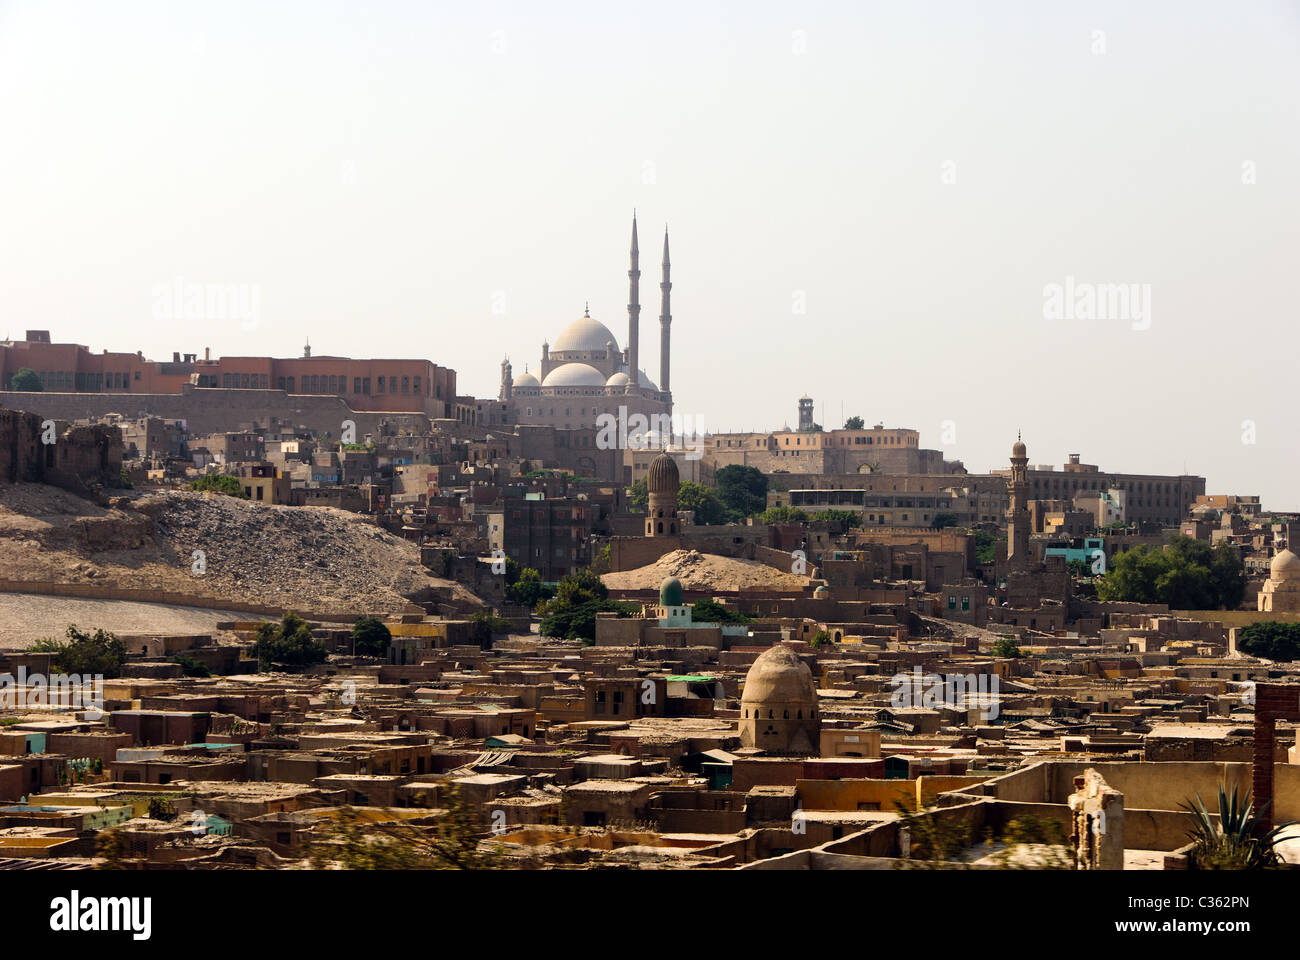 Muhammad Ali Mosque from the City of Dead - Cairo, Lower Egypt Stock Photo